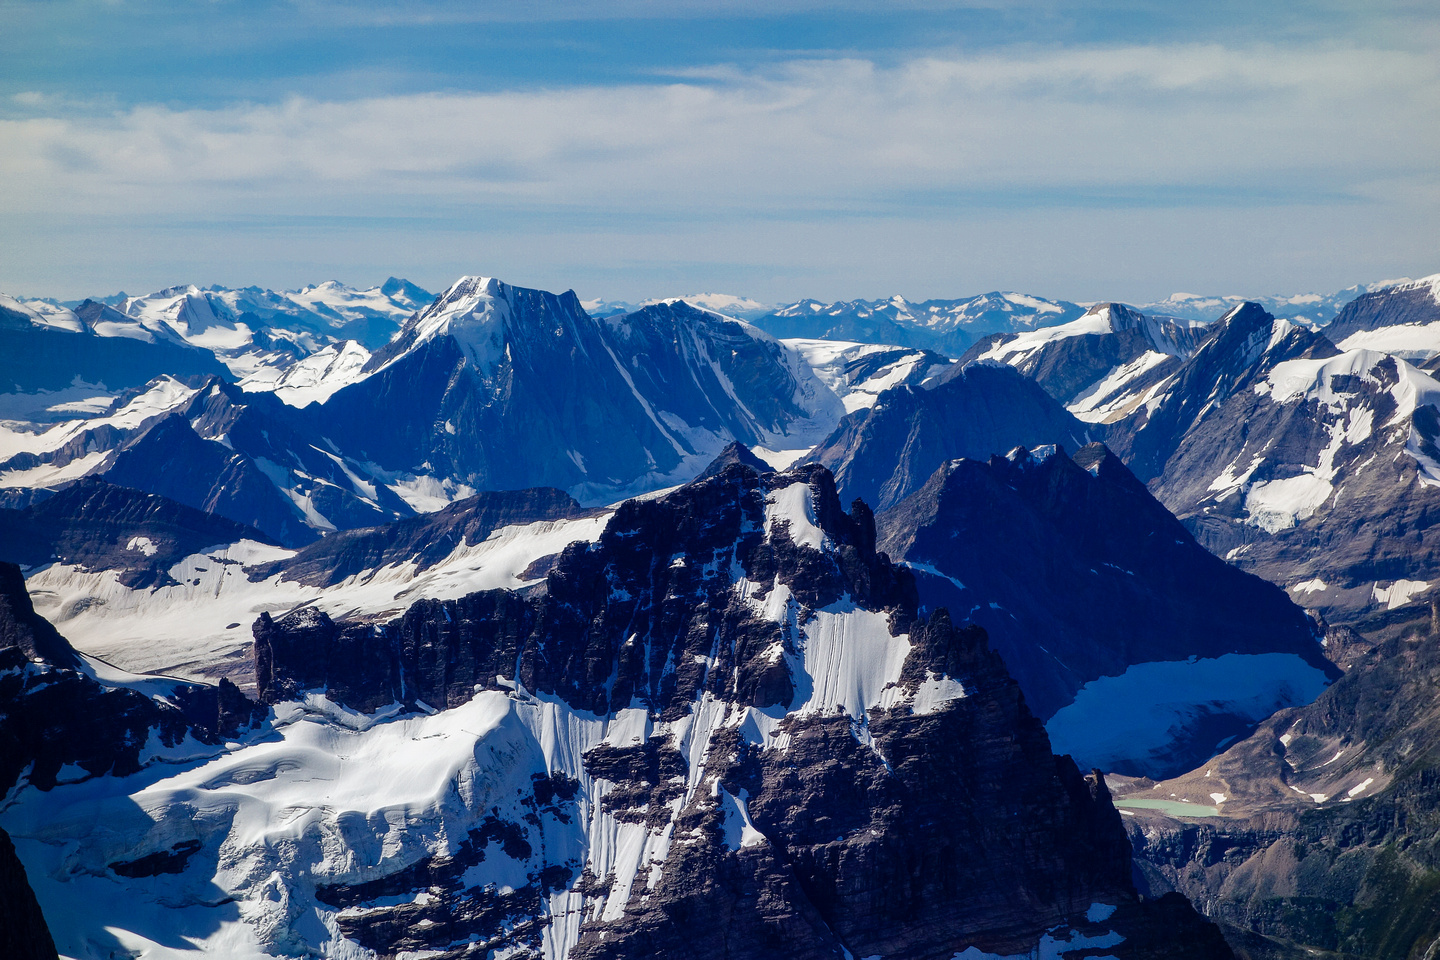 The north face of Serenity Peak (left of center) is impressive!